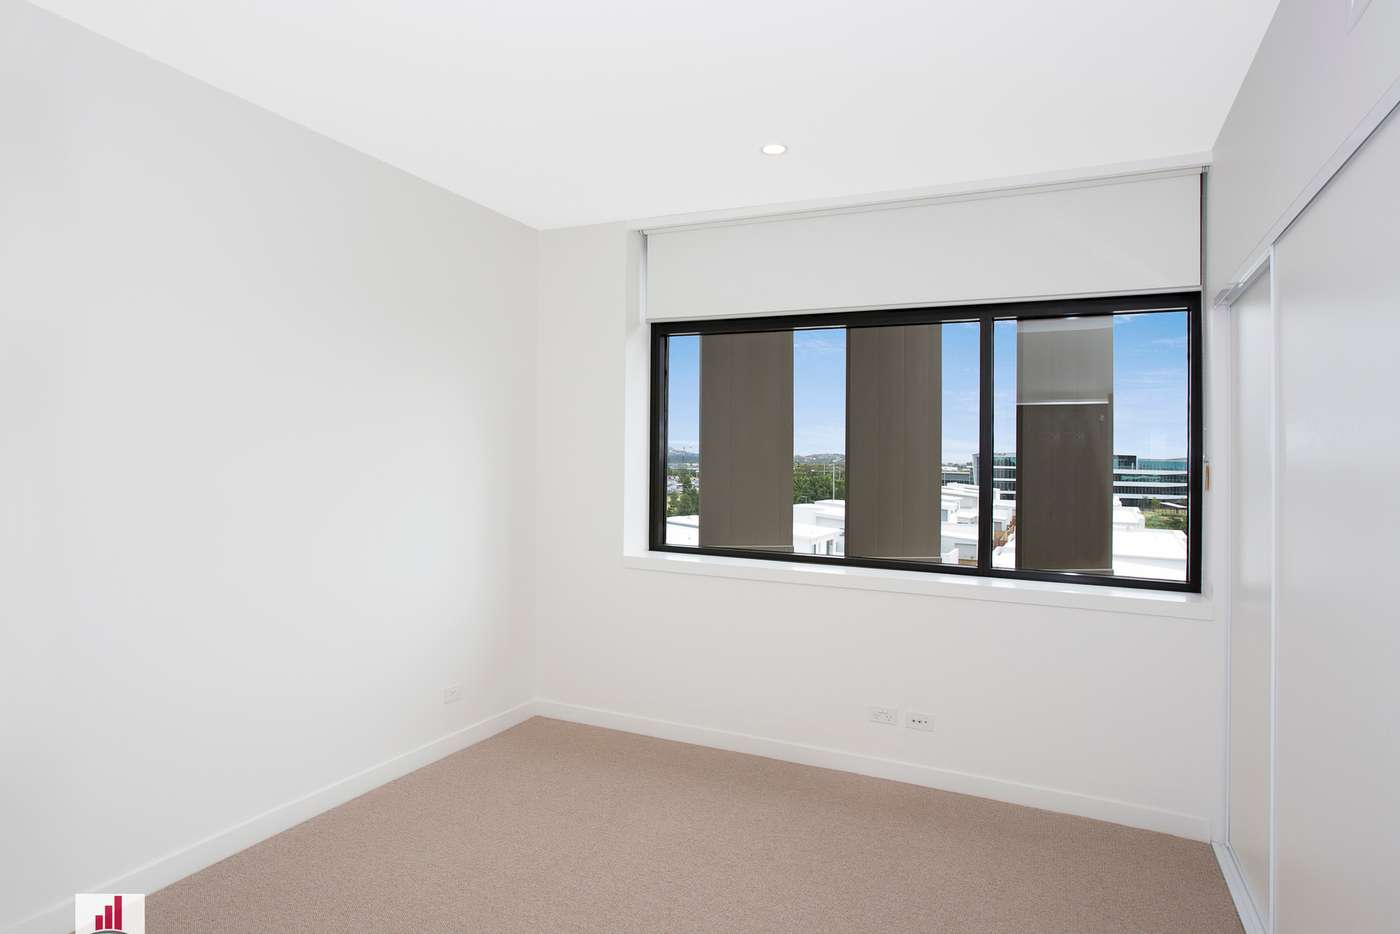 Sixth view of Homely apartment listing, 5408/331 MacArthur Avenue, Hamilton QLD 4007